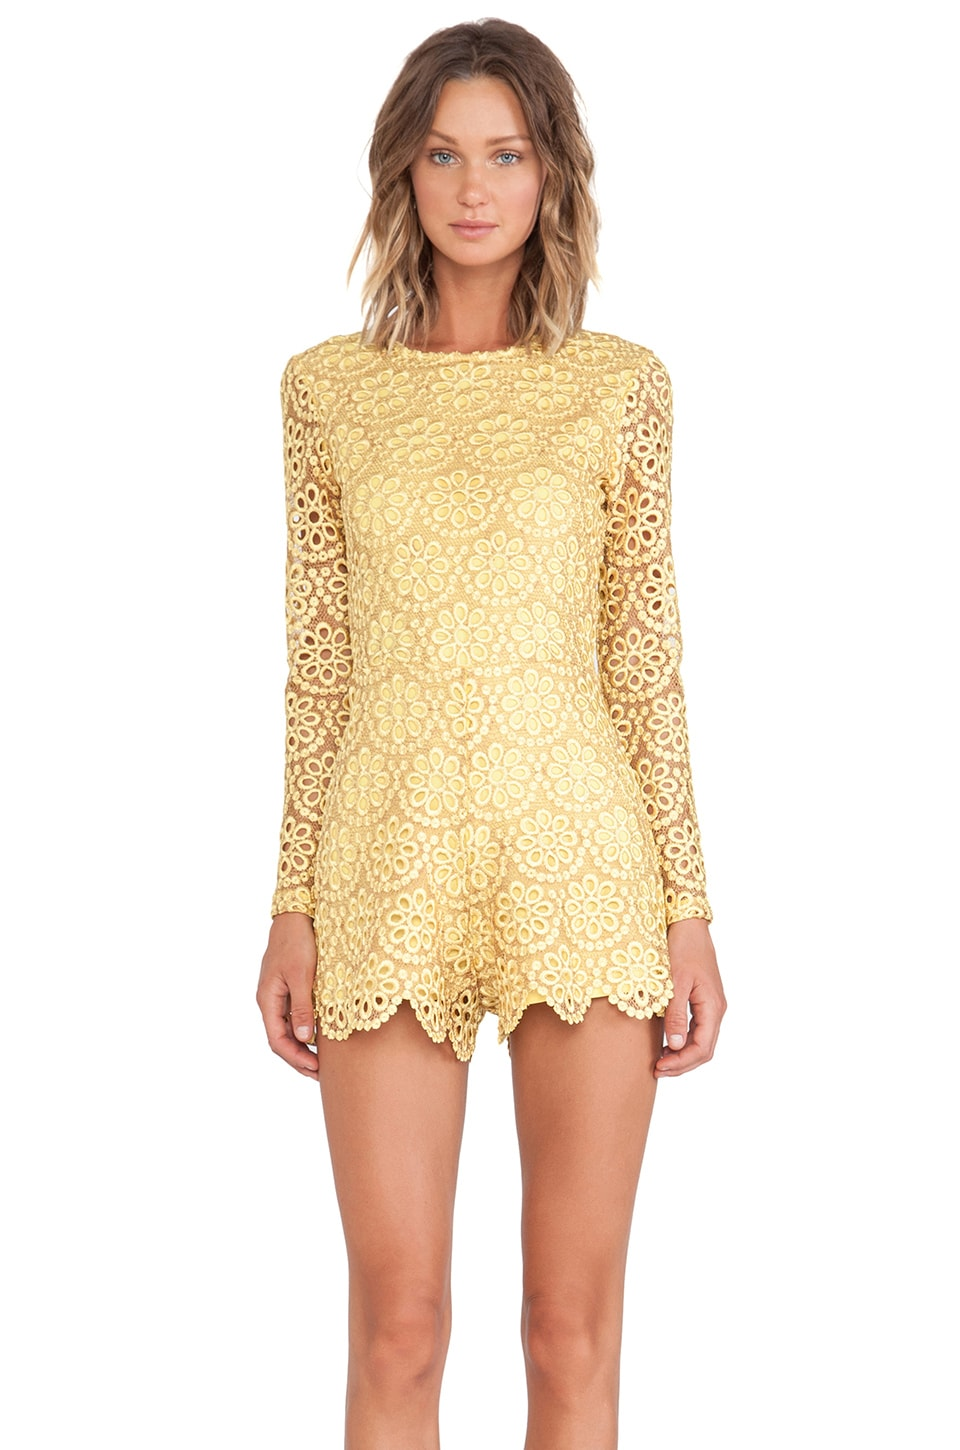 Alexis Izu Long Sleeve Romper in Floral Amber